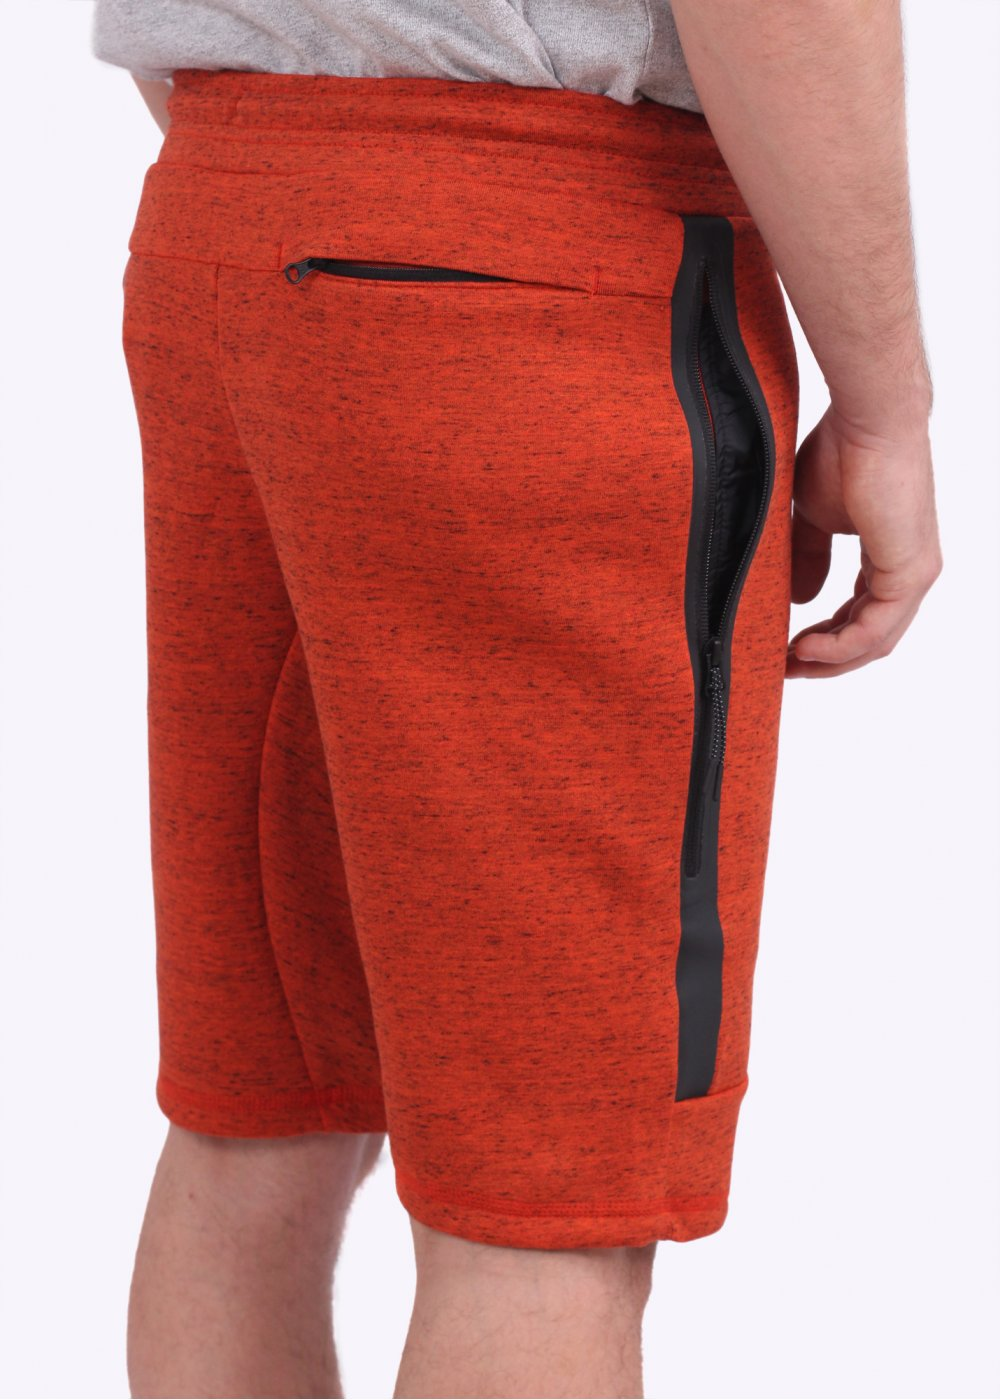 nike tech fleece shorts orange black. Black Bedroom Furniture Sets. Home Design Ideas